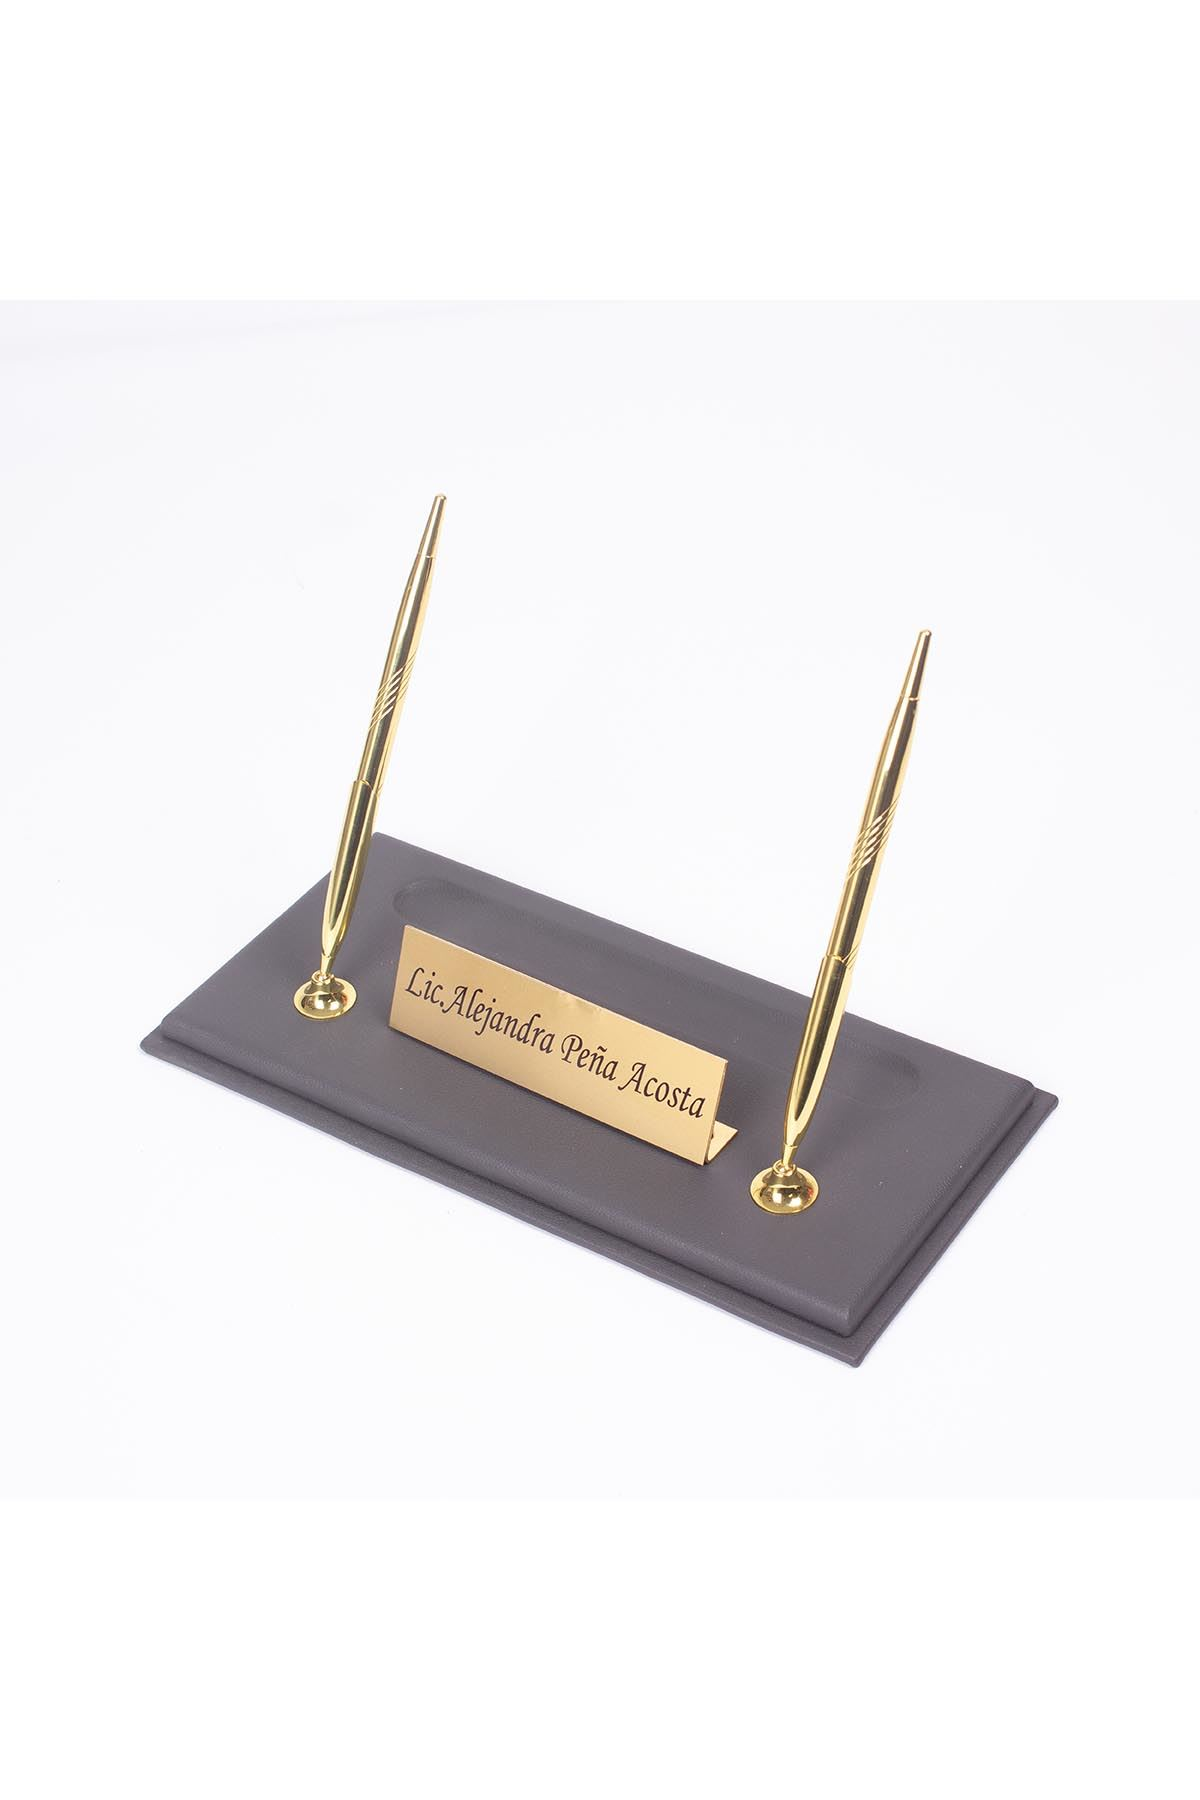 Leather Manager Pen Base Gray| Name Plate | Golden Pen Base | Desk Accessories